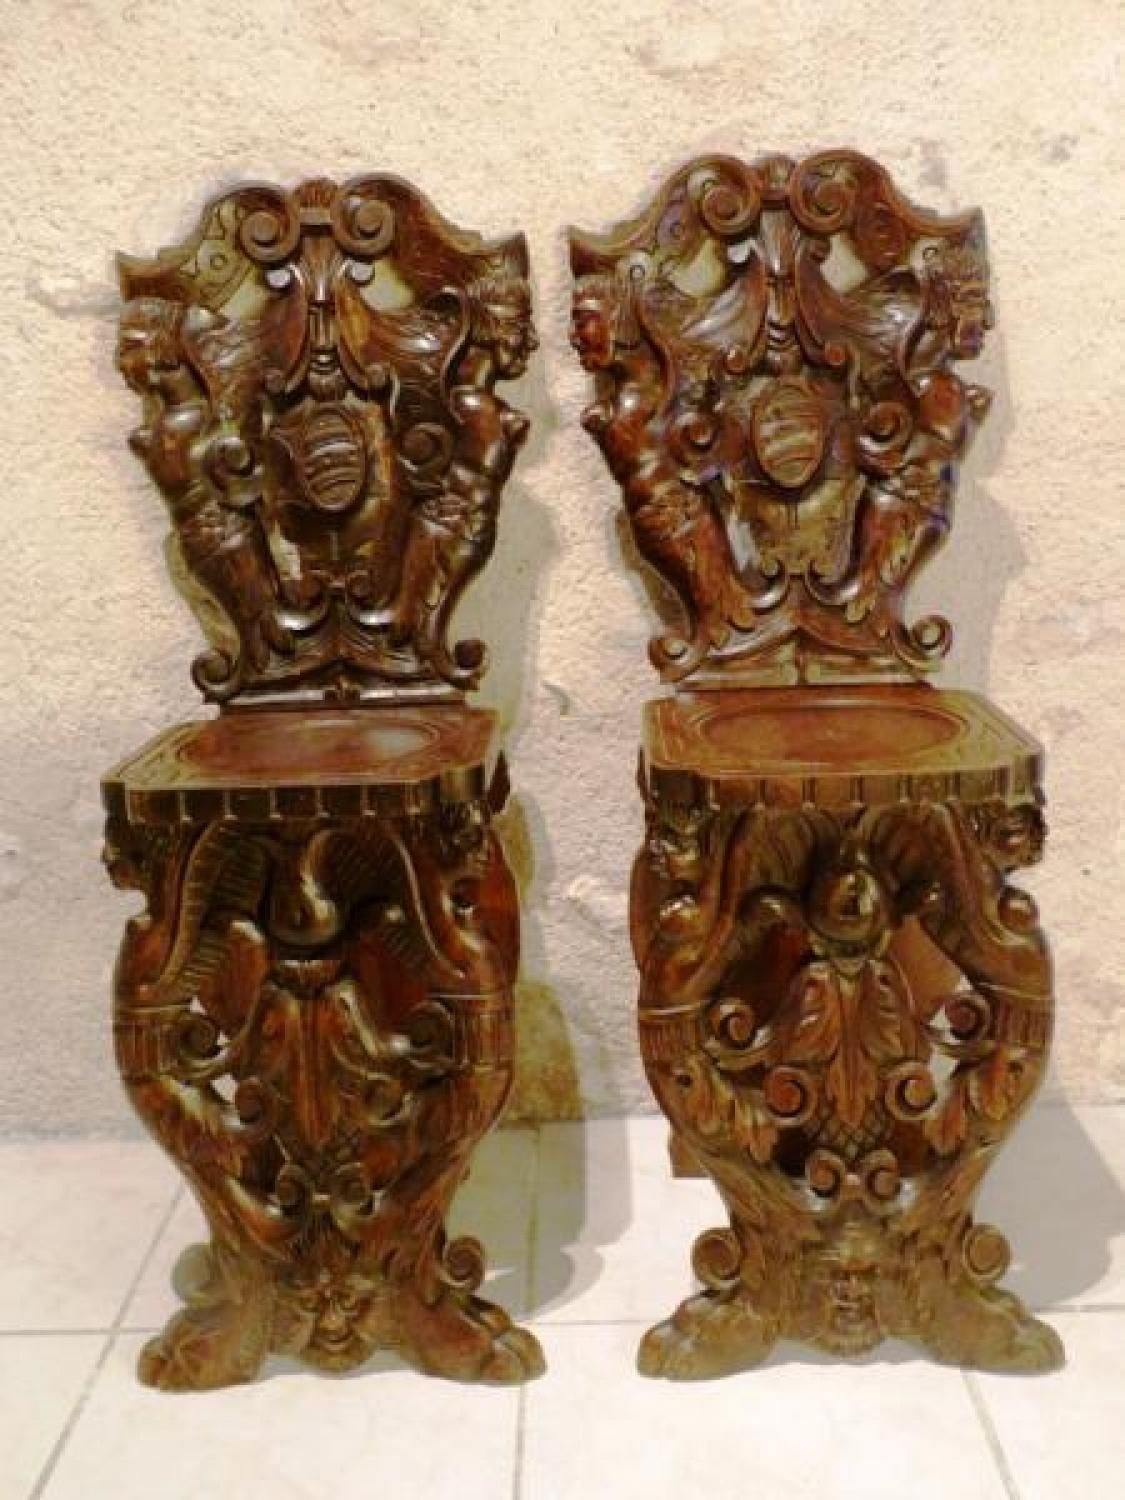 Antique For Sale Pair Of Sgabello Italian Renaissance Style Chair Seat  Furniture